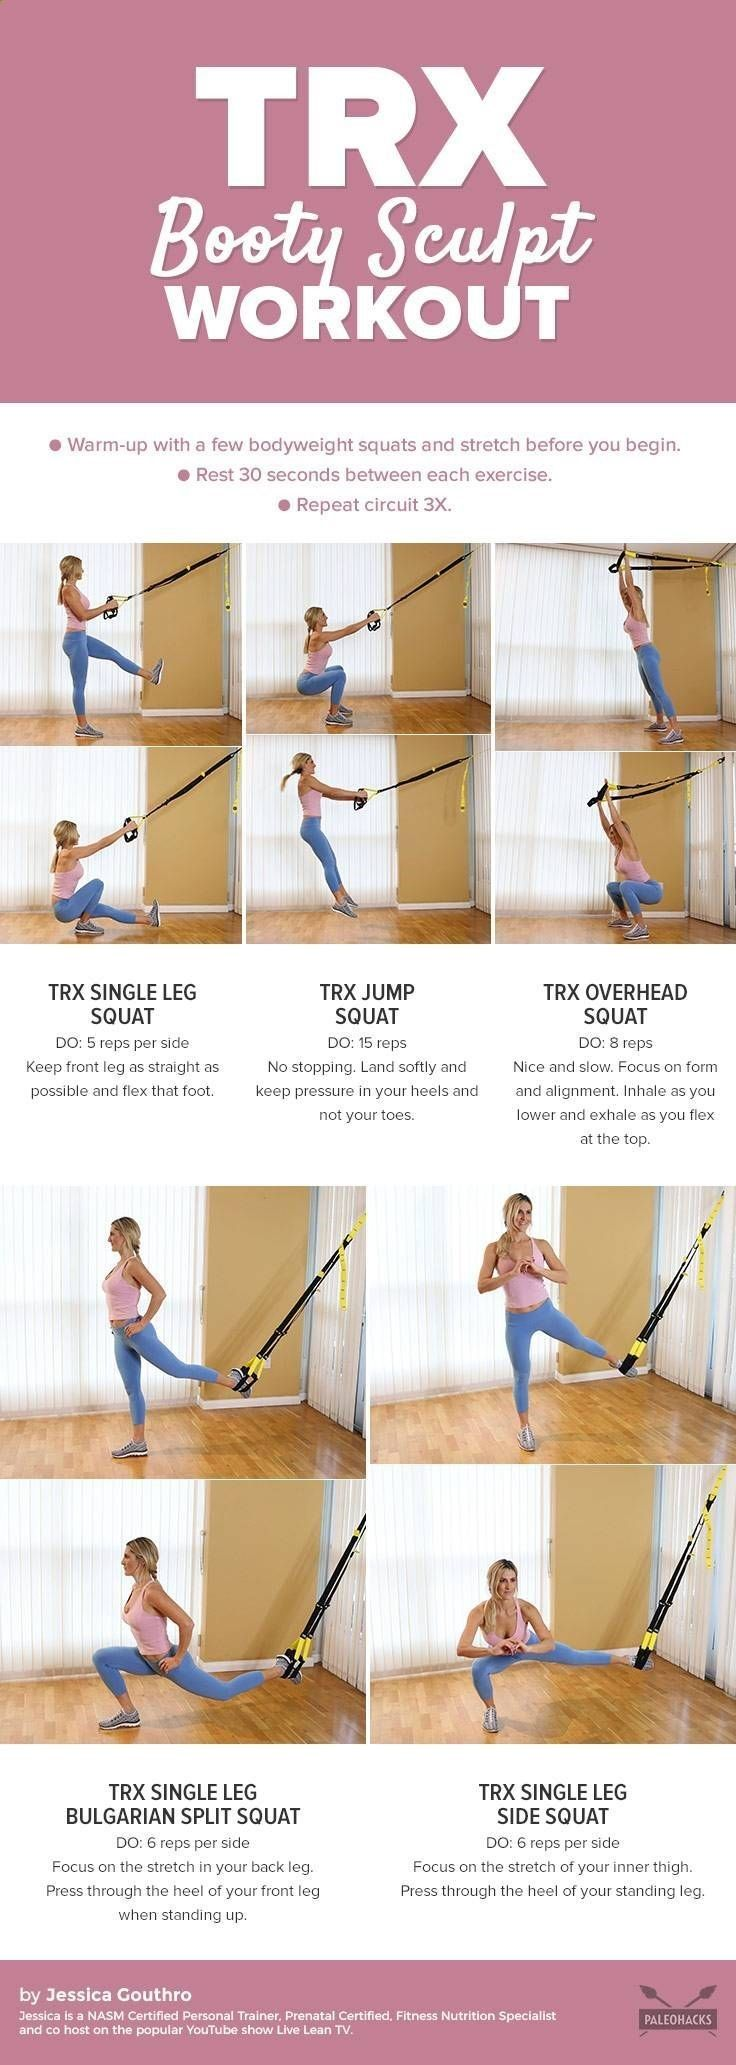 Excersices For Legs At Home and At The Gym - Squats are one of the most effective ways to train your legs and butt. To take them to the next level, use these TRX moves to transform your squats into more challenging variations. Get the workout here: paleo.co/trxsquats - Strengthening our legs is an exercise that we are going to make profitable from the beginning and, therefore, we must include it in our weekly training routine